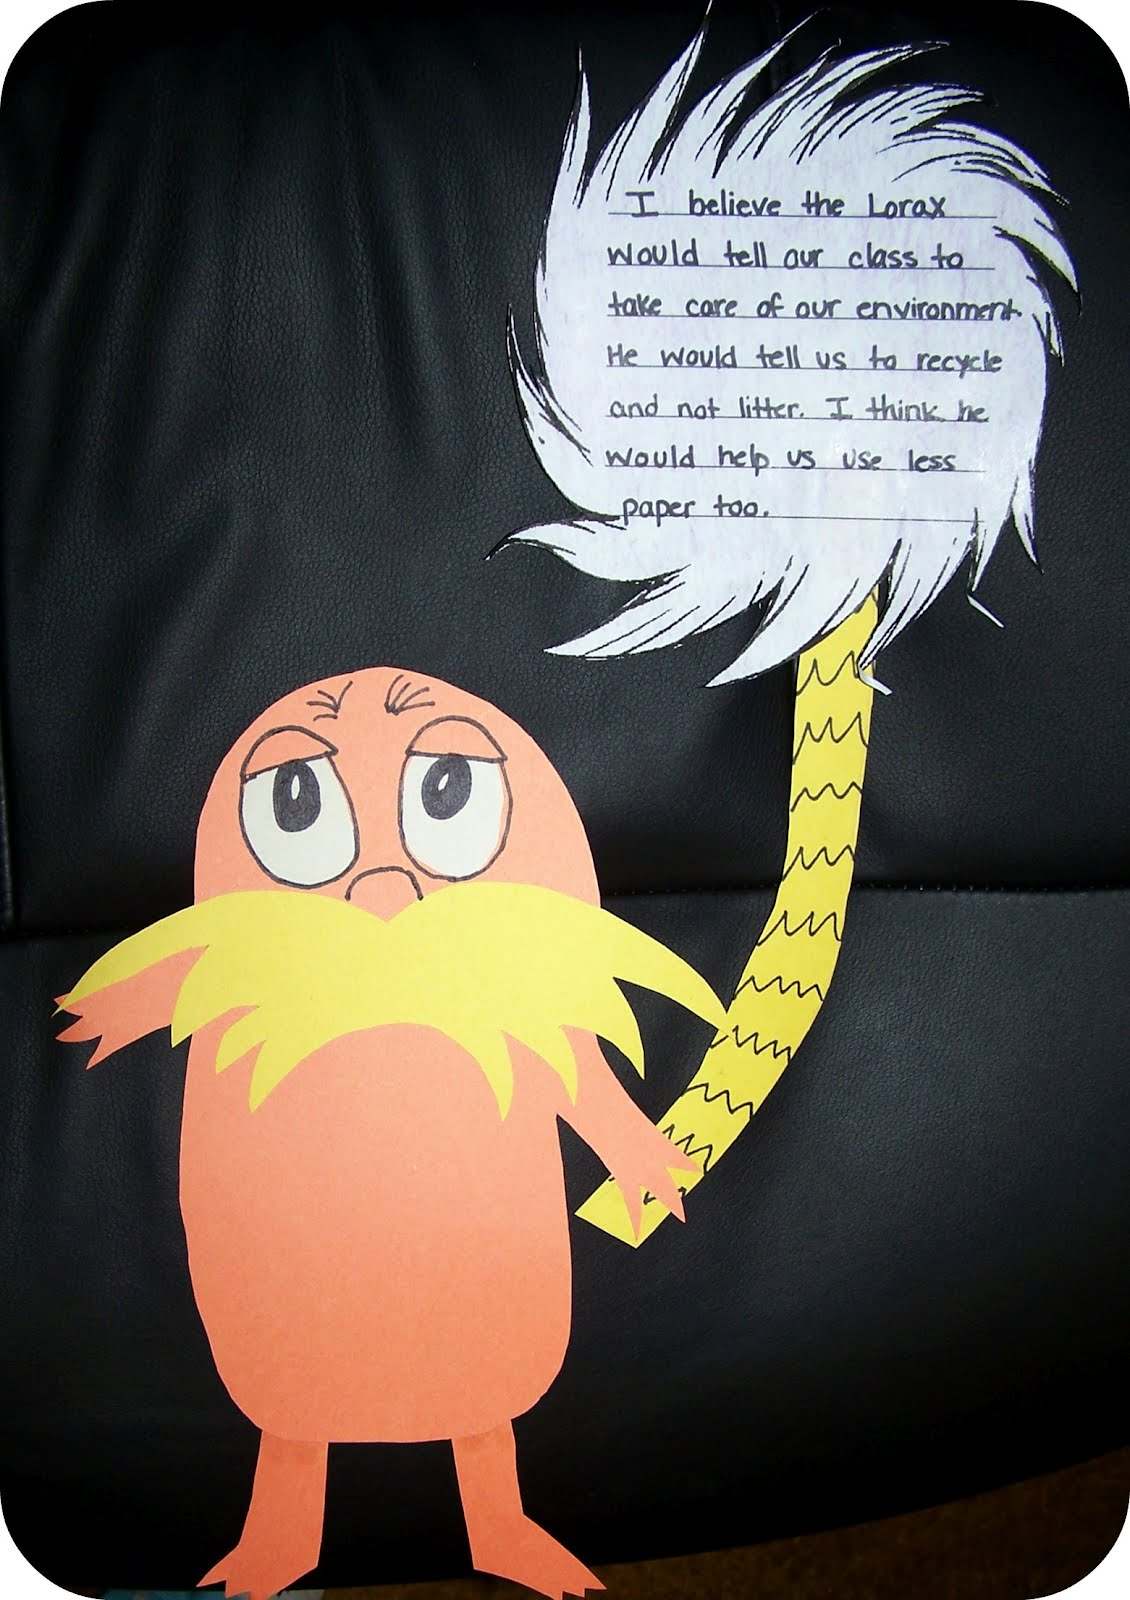 the lorax essay